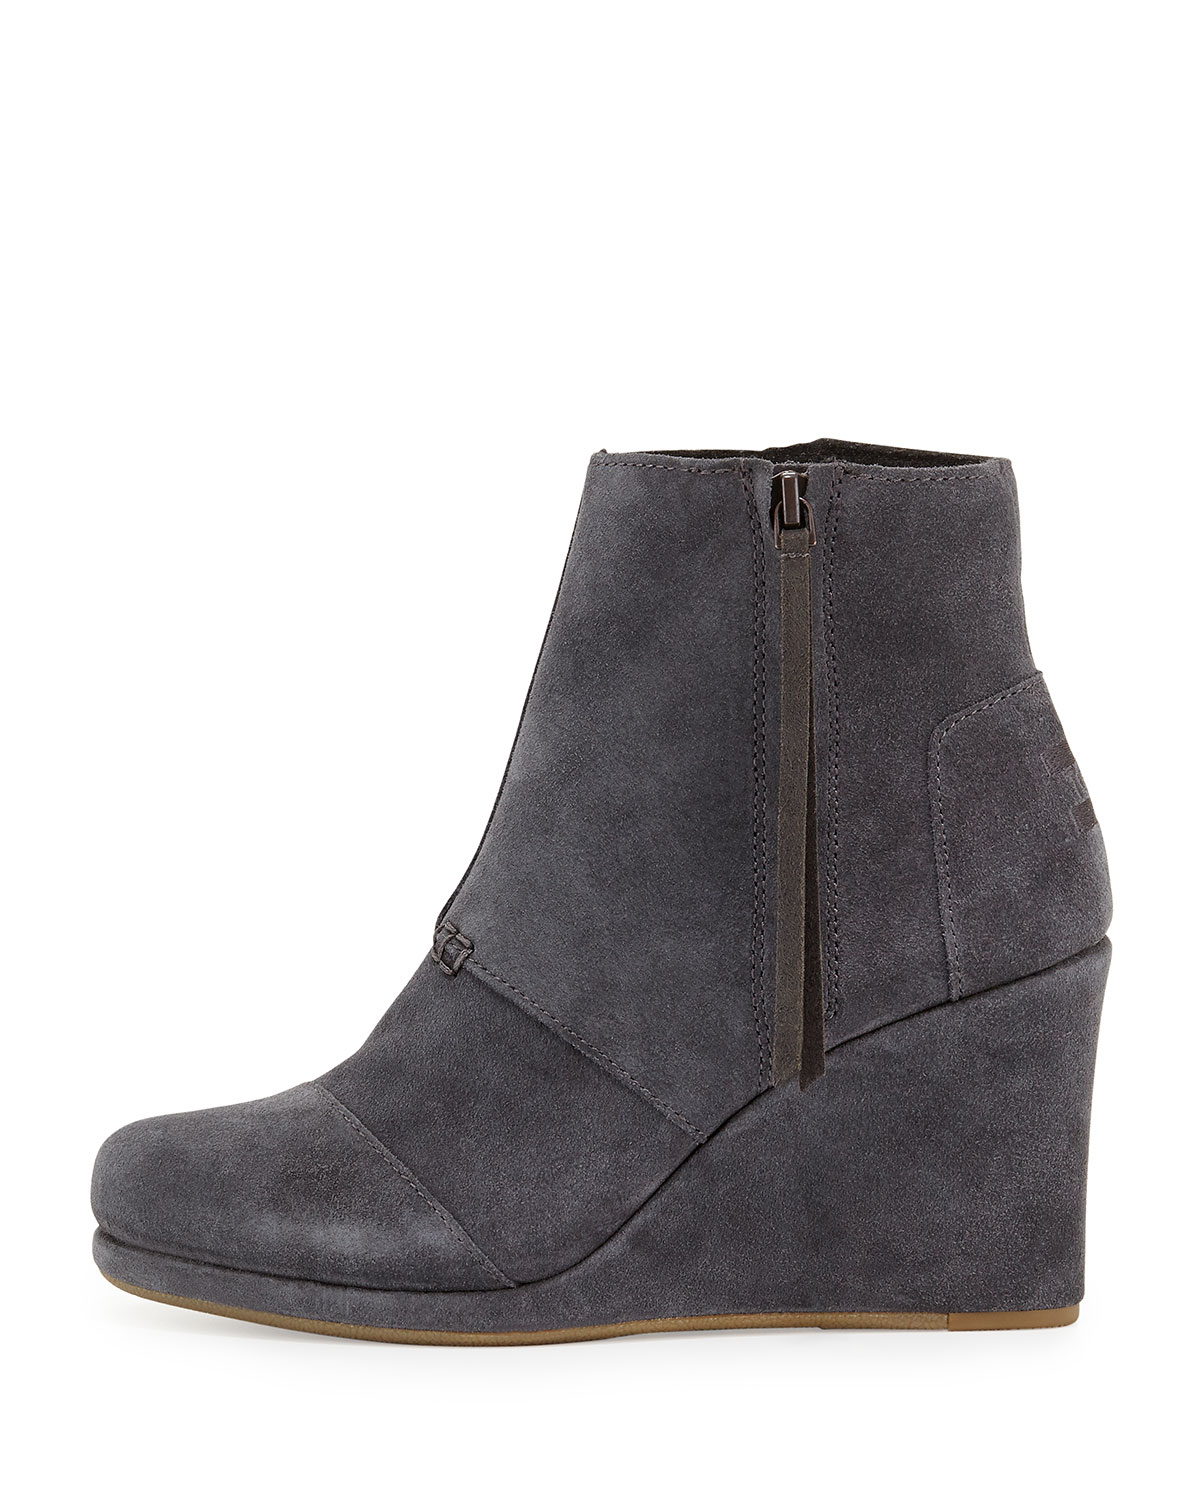 Grey Wedge Dress Shoes